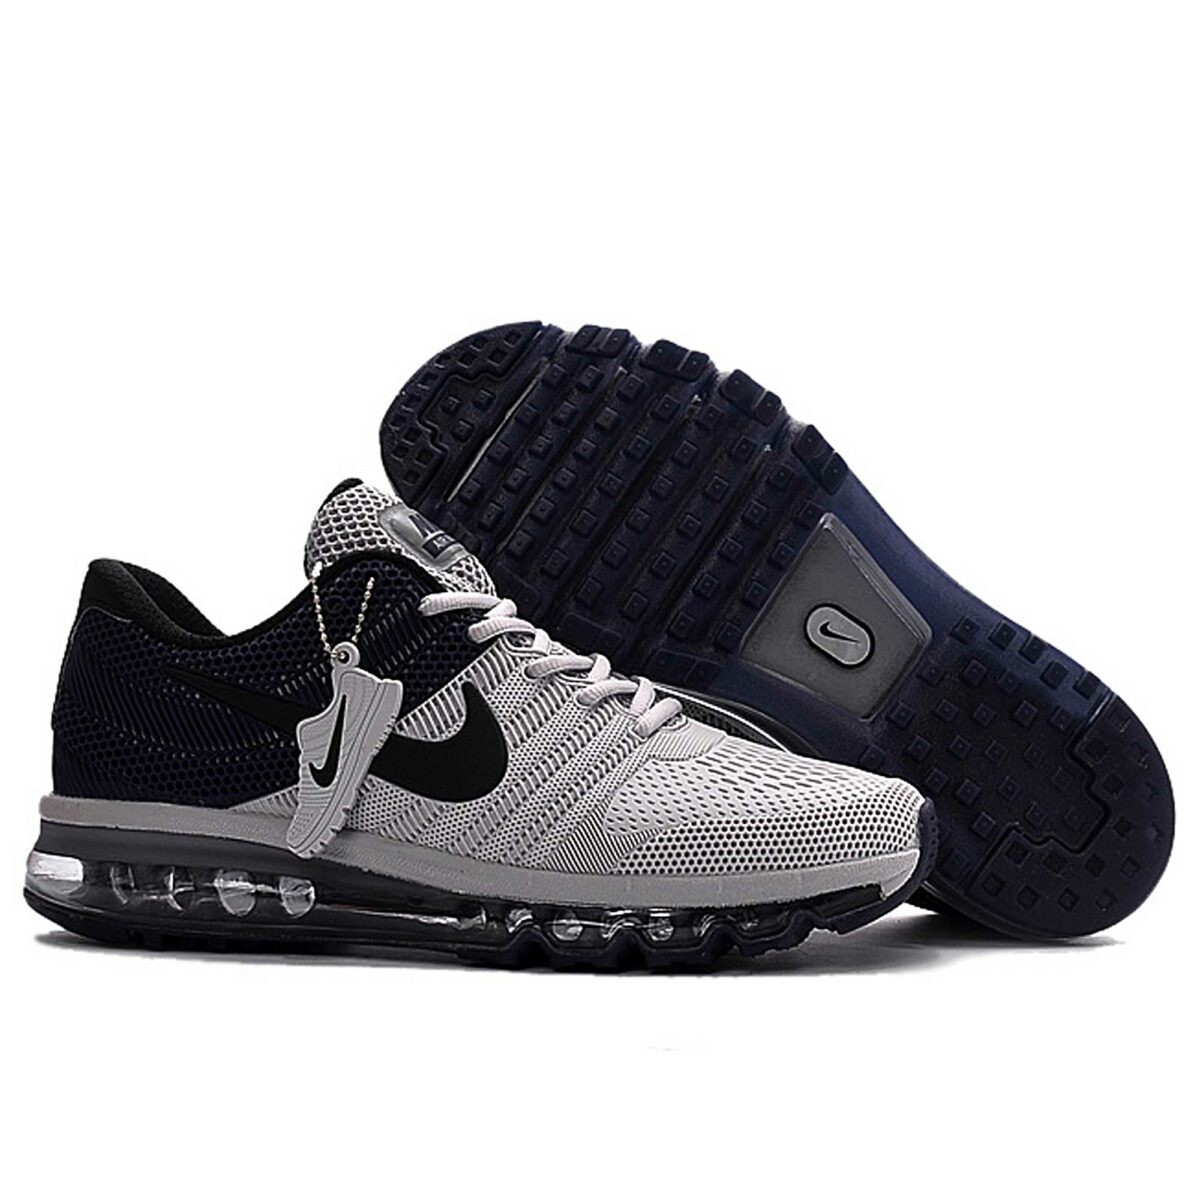 nike air max 2017 KPU grey black 849560-407 купить